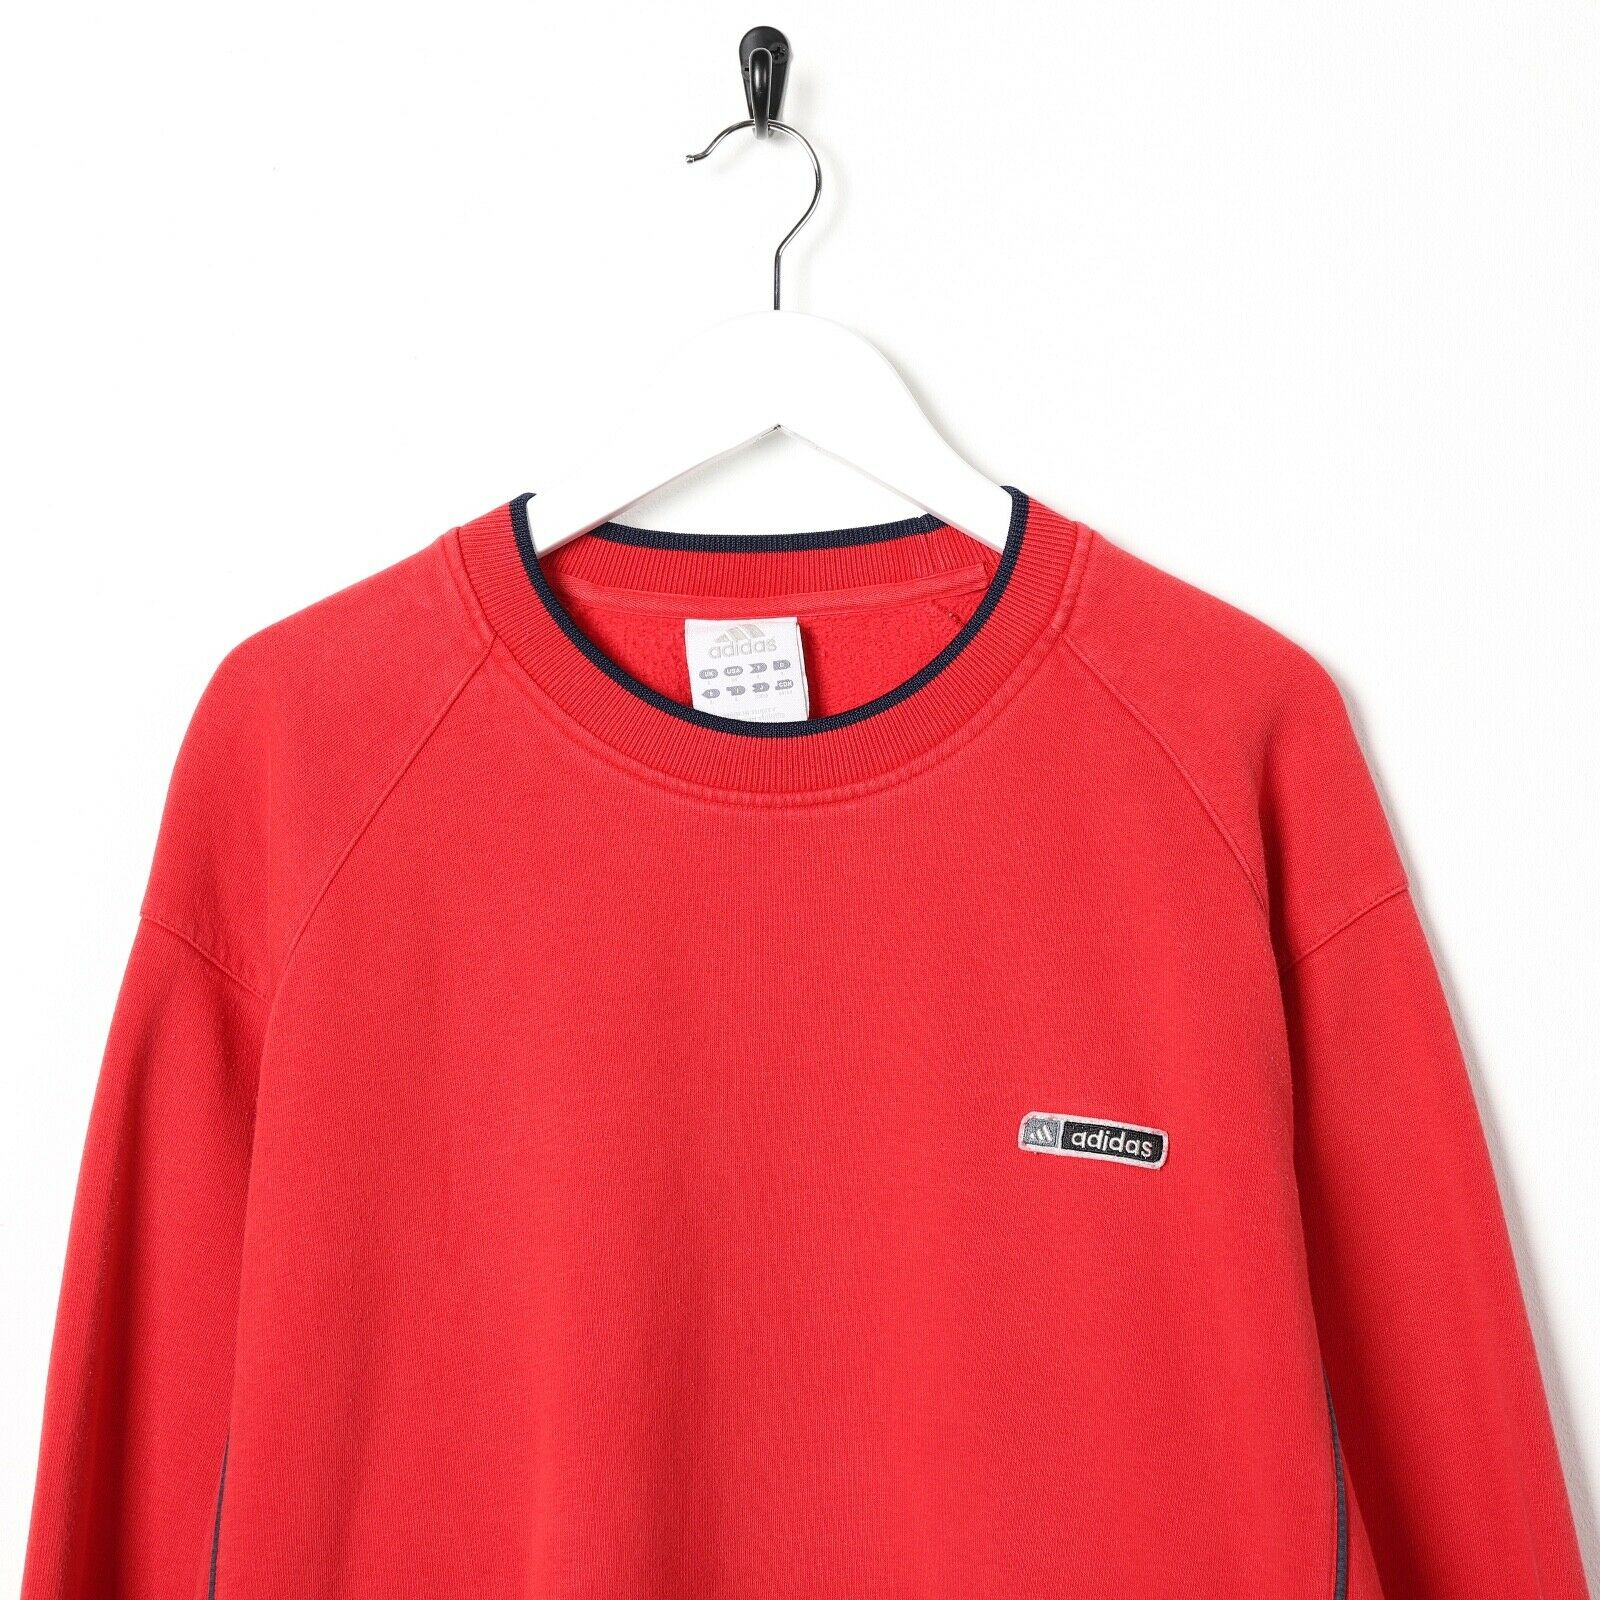 Vintage ADIDAS Small Logo Sweatshirt Jumper Red Large L